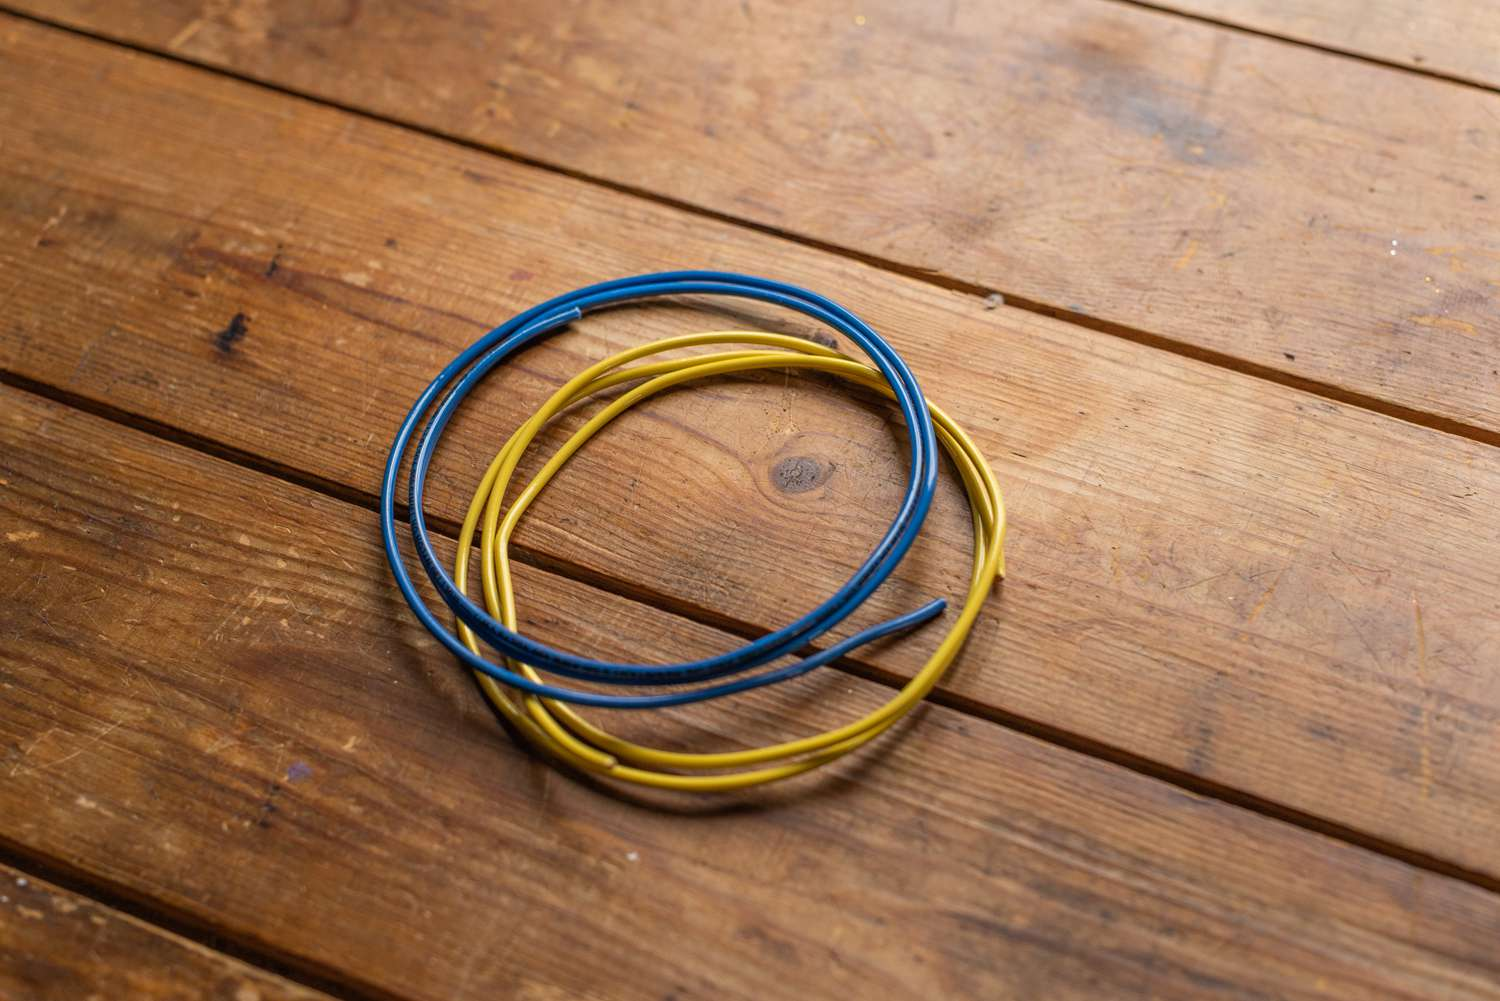 hight resolution of blue and yellow wires insulation